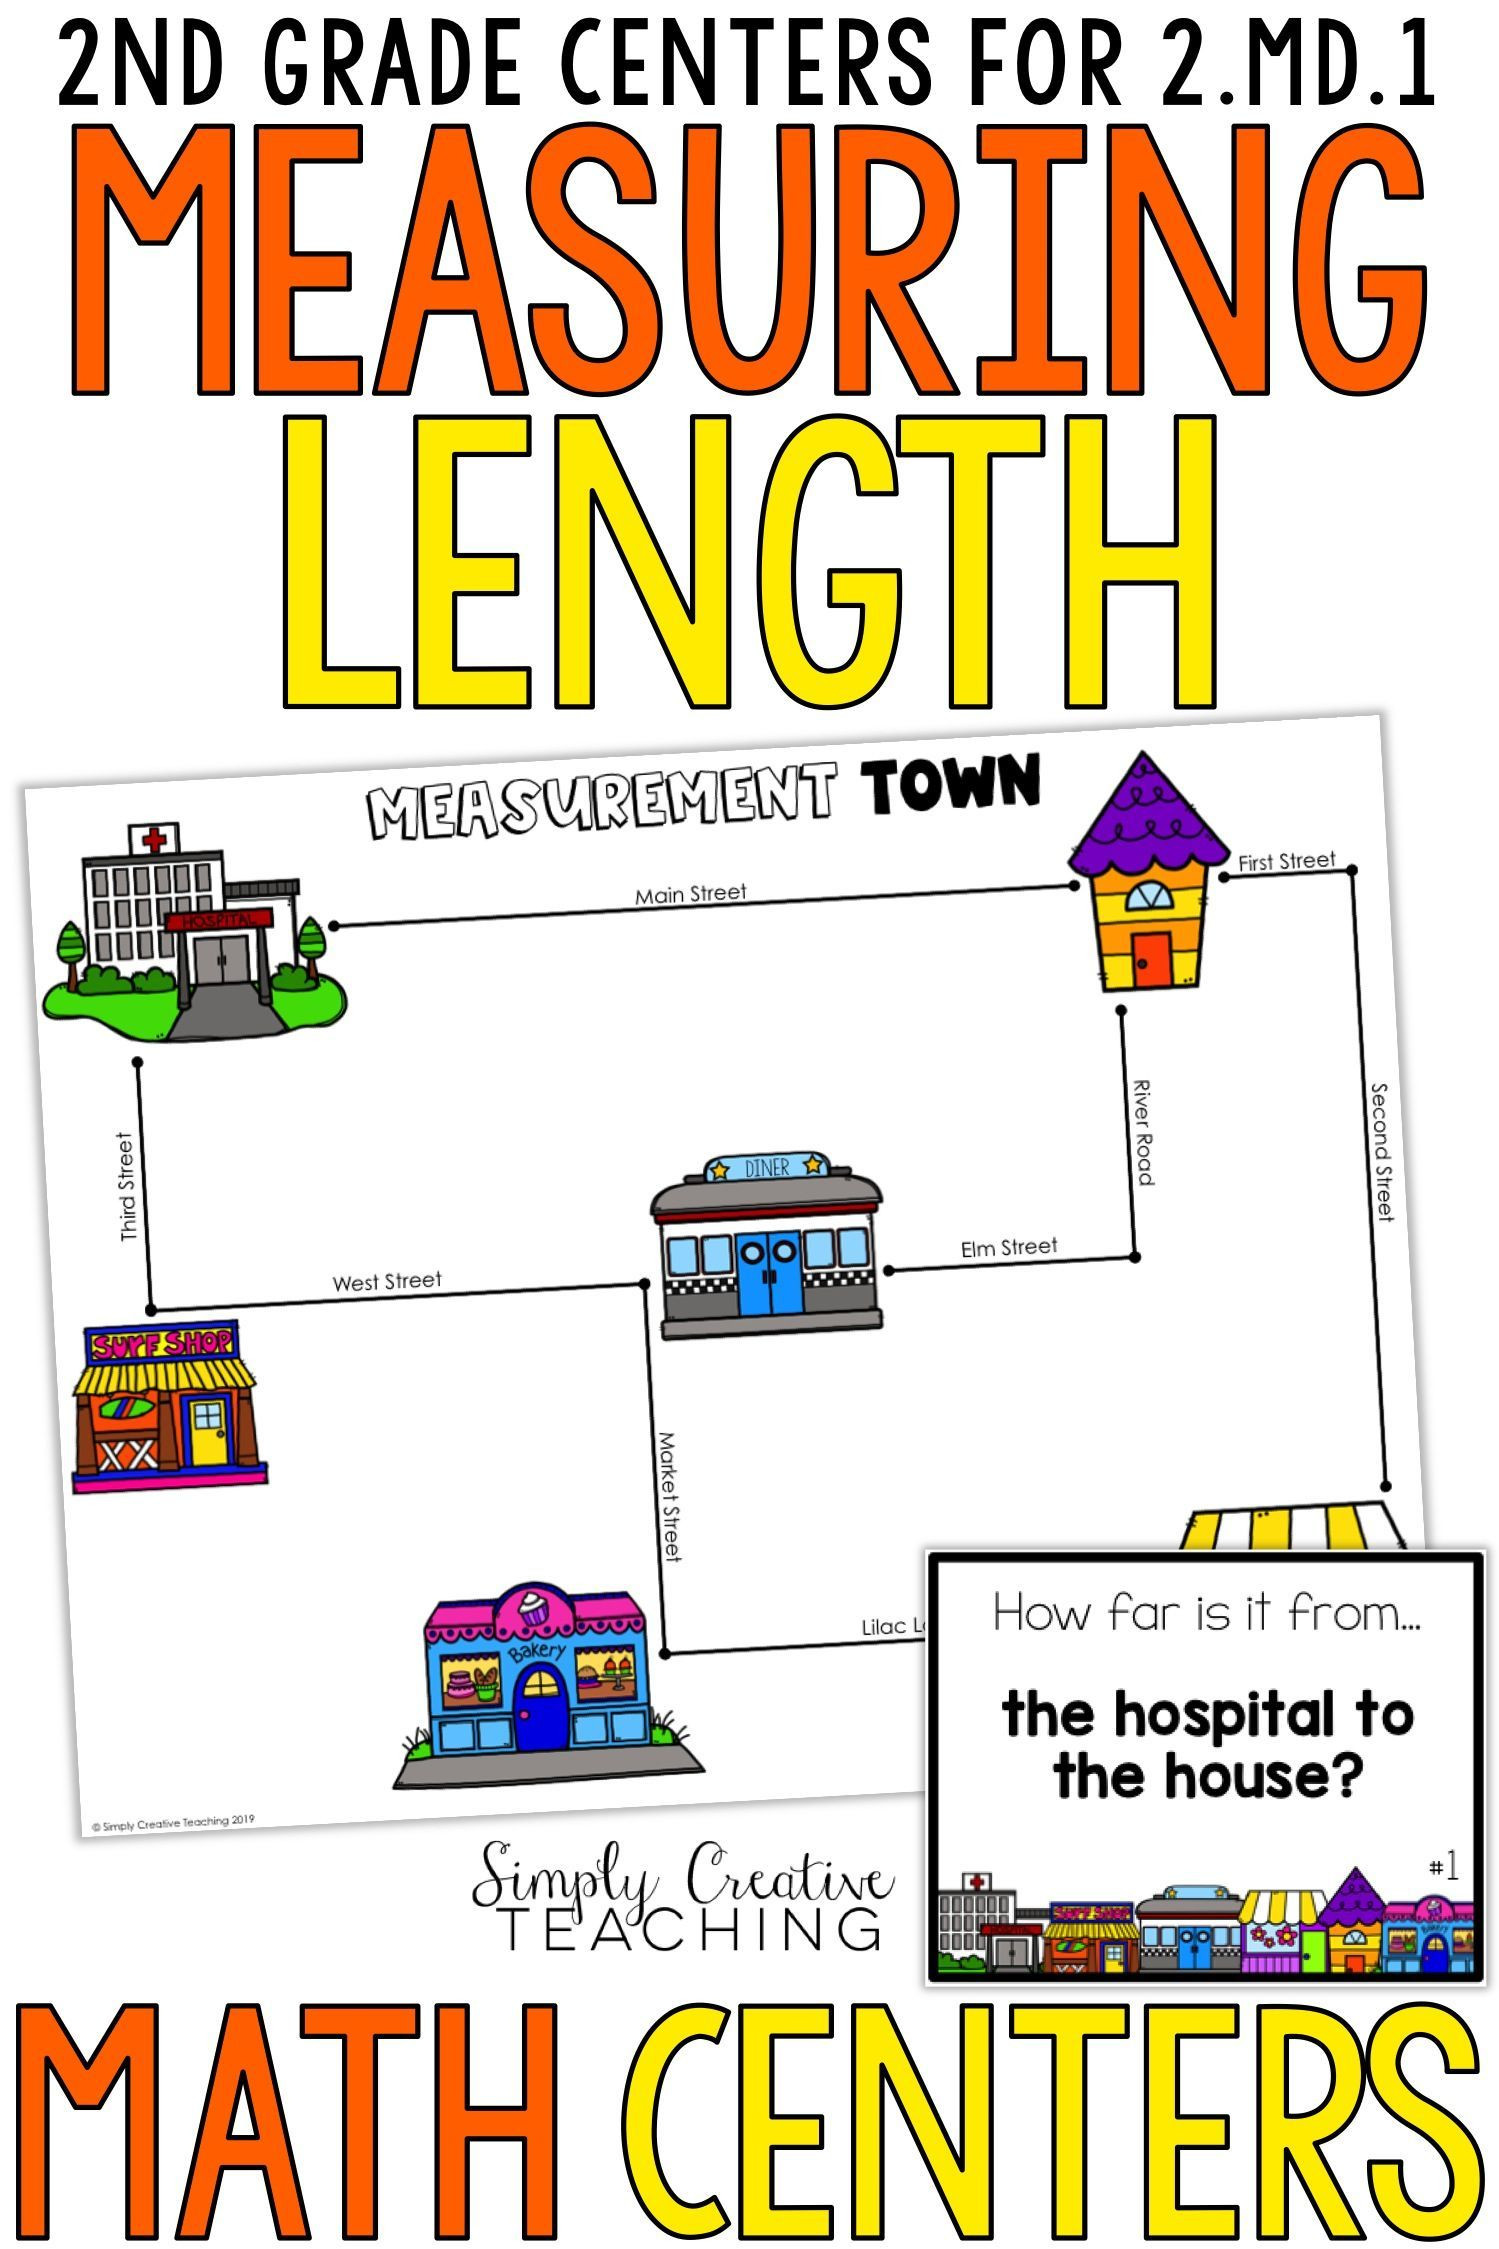 Measurement Worksheets for 2nd Grade 2nd Grade Measurement Centers for 2 Md 1